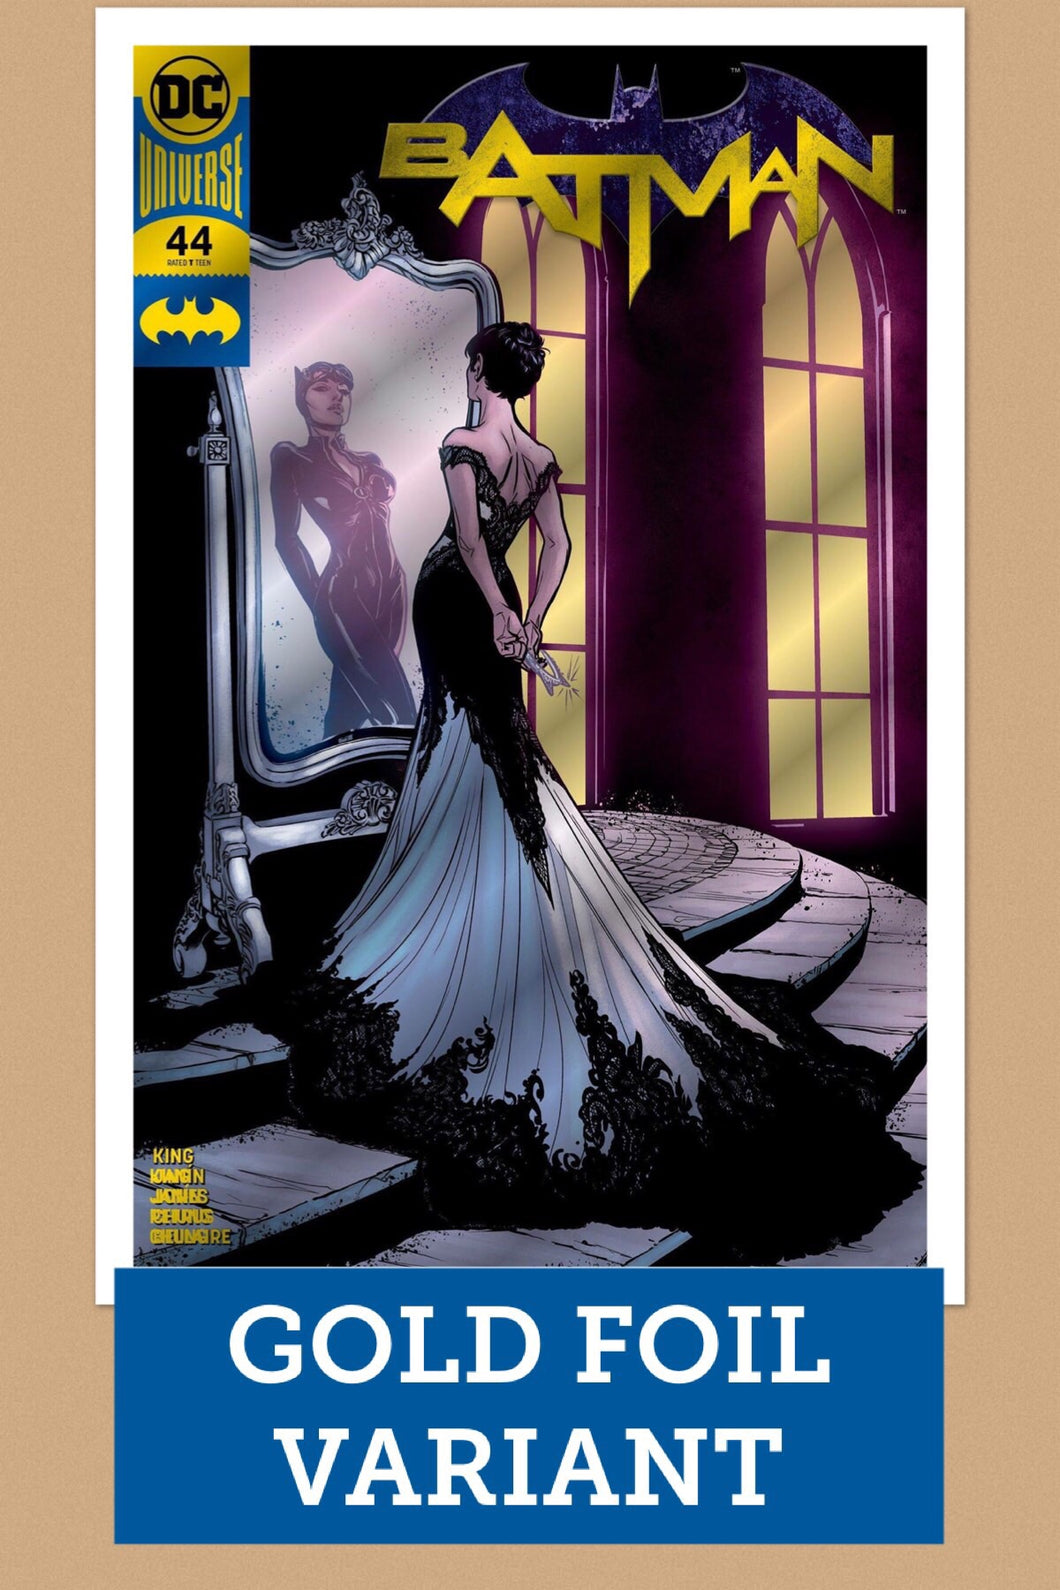 BATMAN #44 GOLD FOIL VARIANT LTD TO 1000 COPIES PREORDER